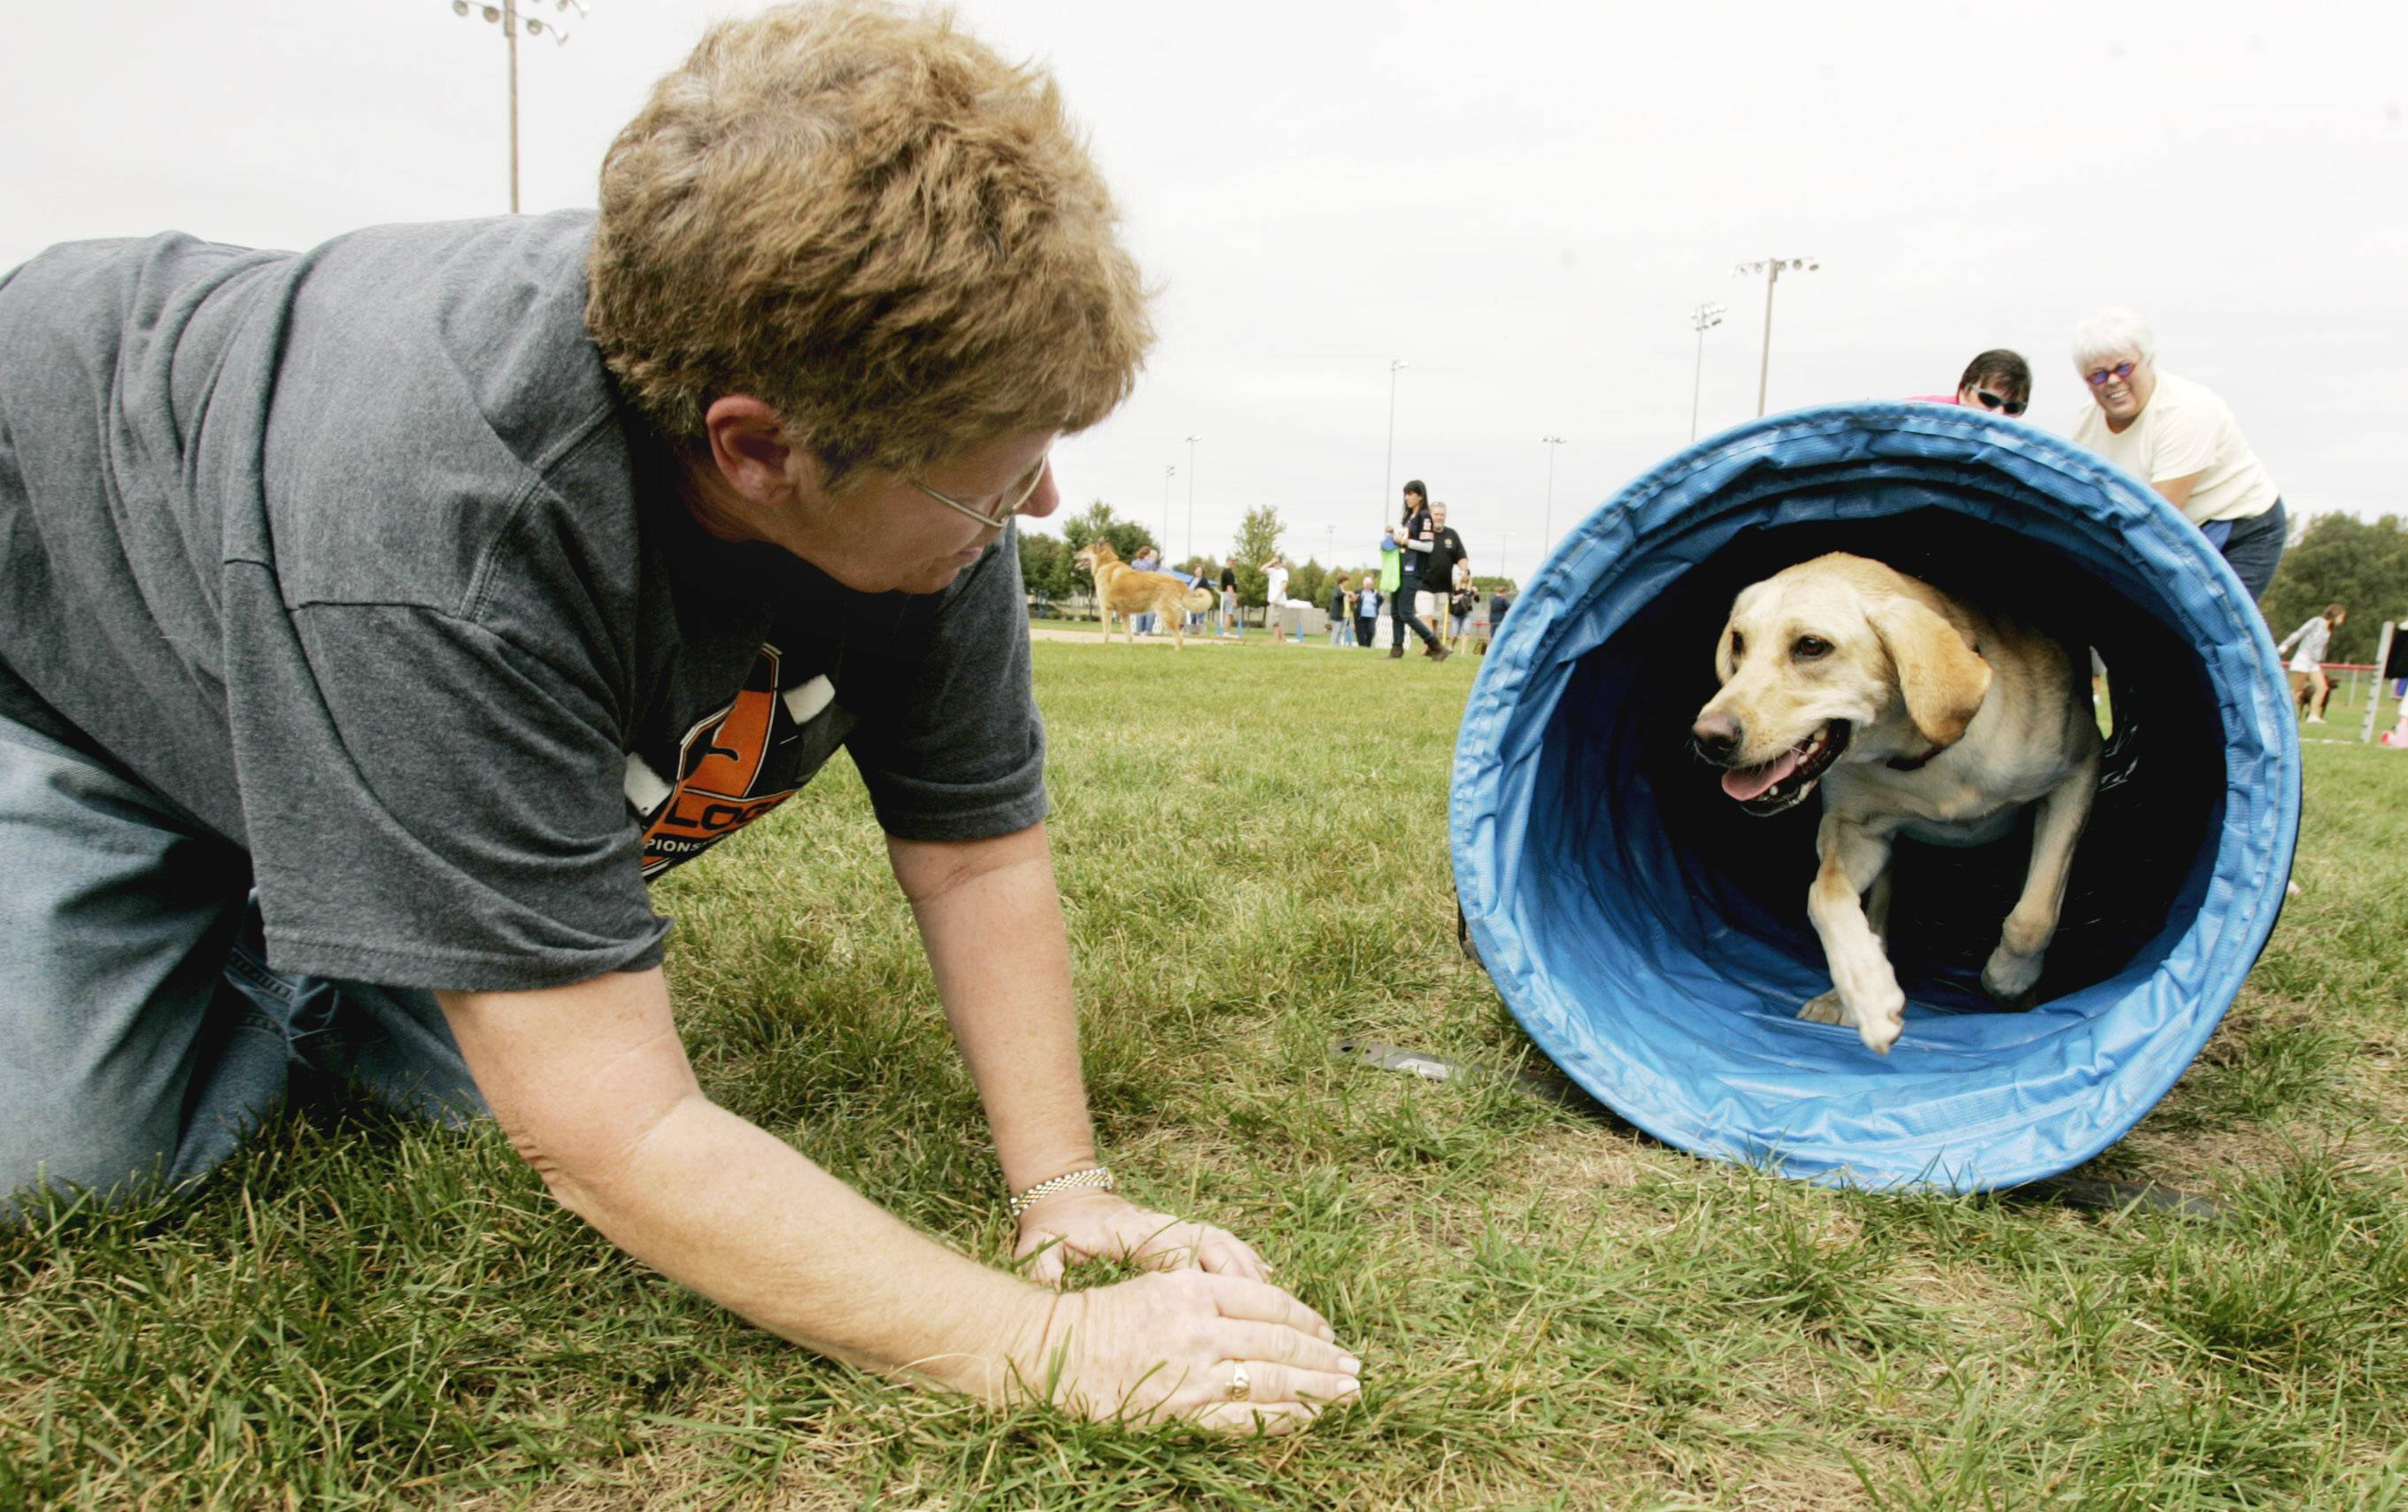 Carol Stream Park District is sponsoring its annual CSBarks Dog Festival on Sunday, Sept. 14, at Carol Stream Town Center.